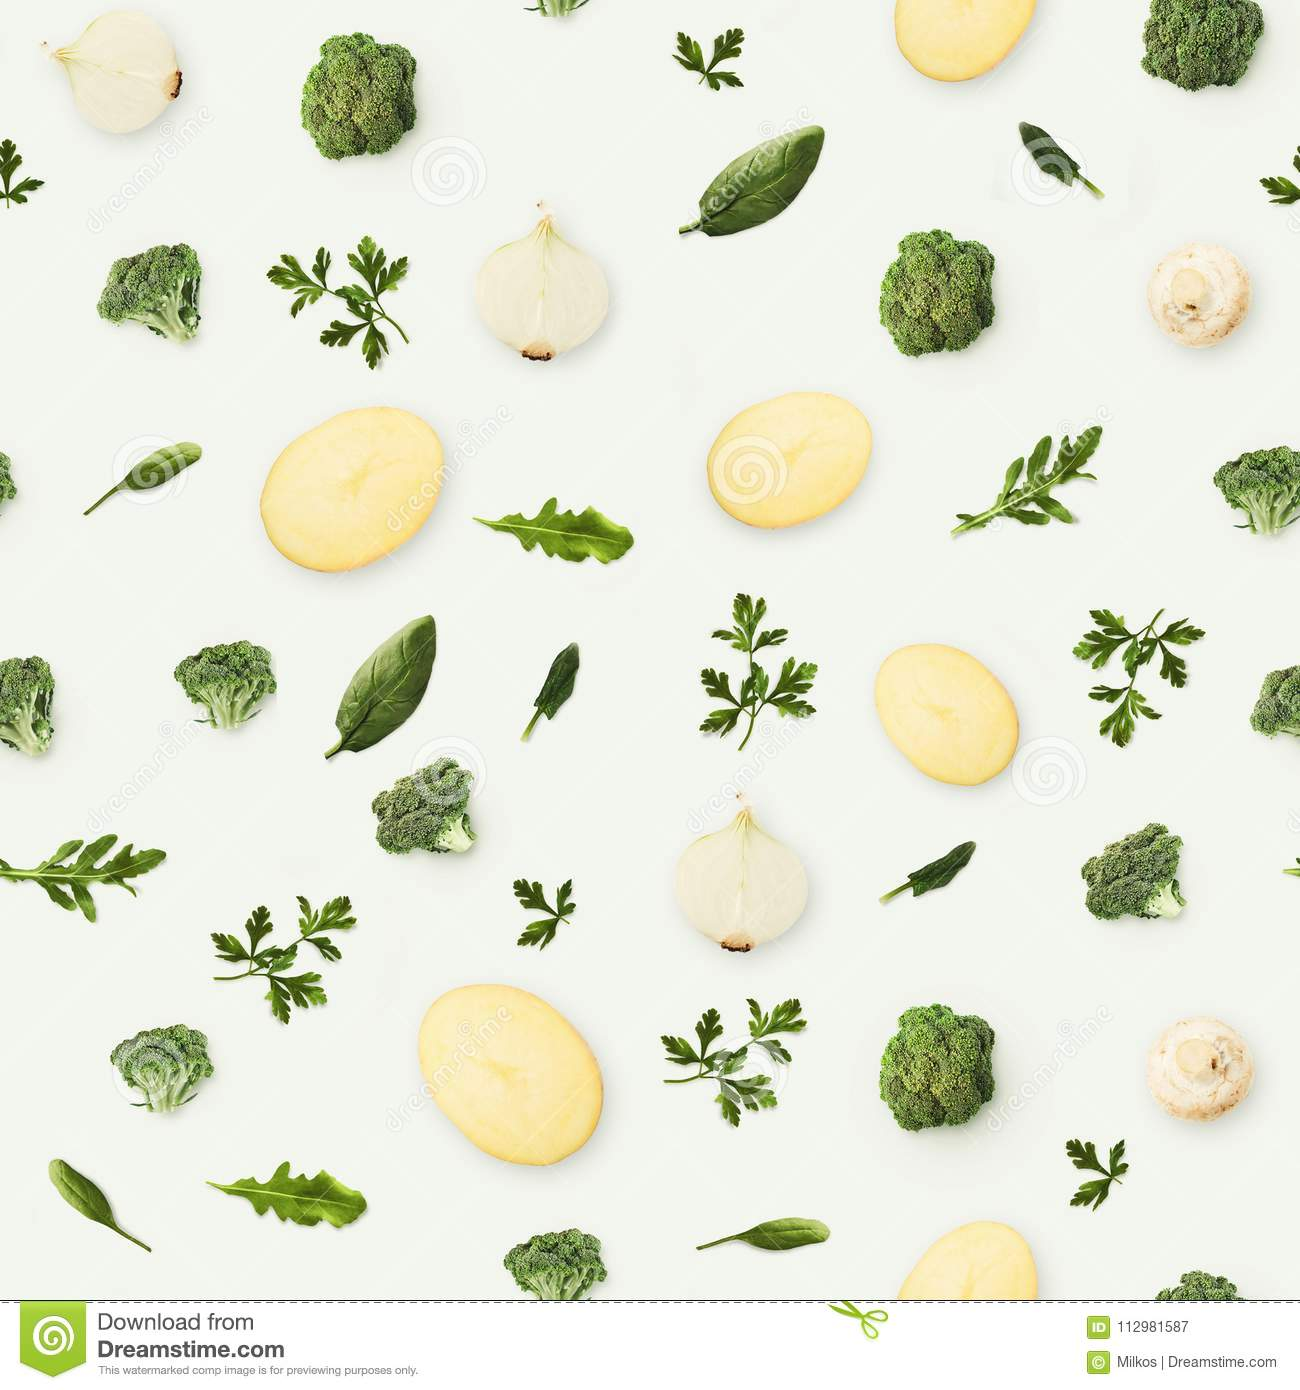 Food background and pattern of fruits and vegetables